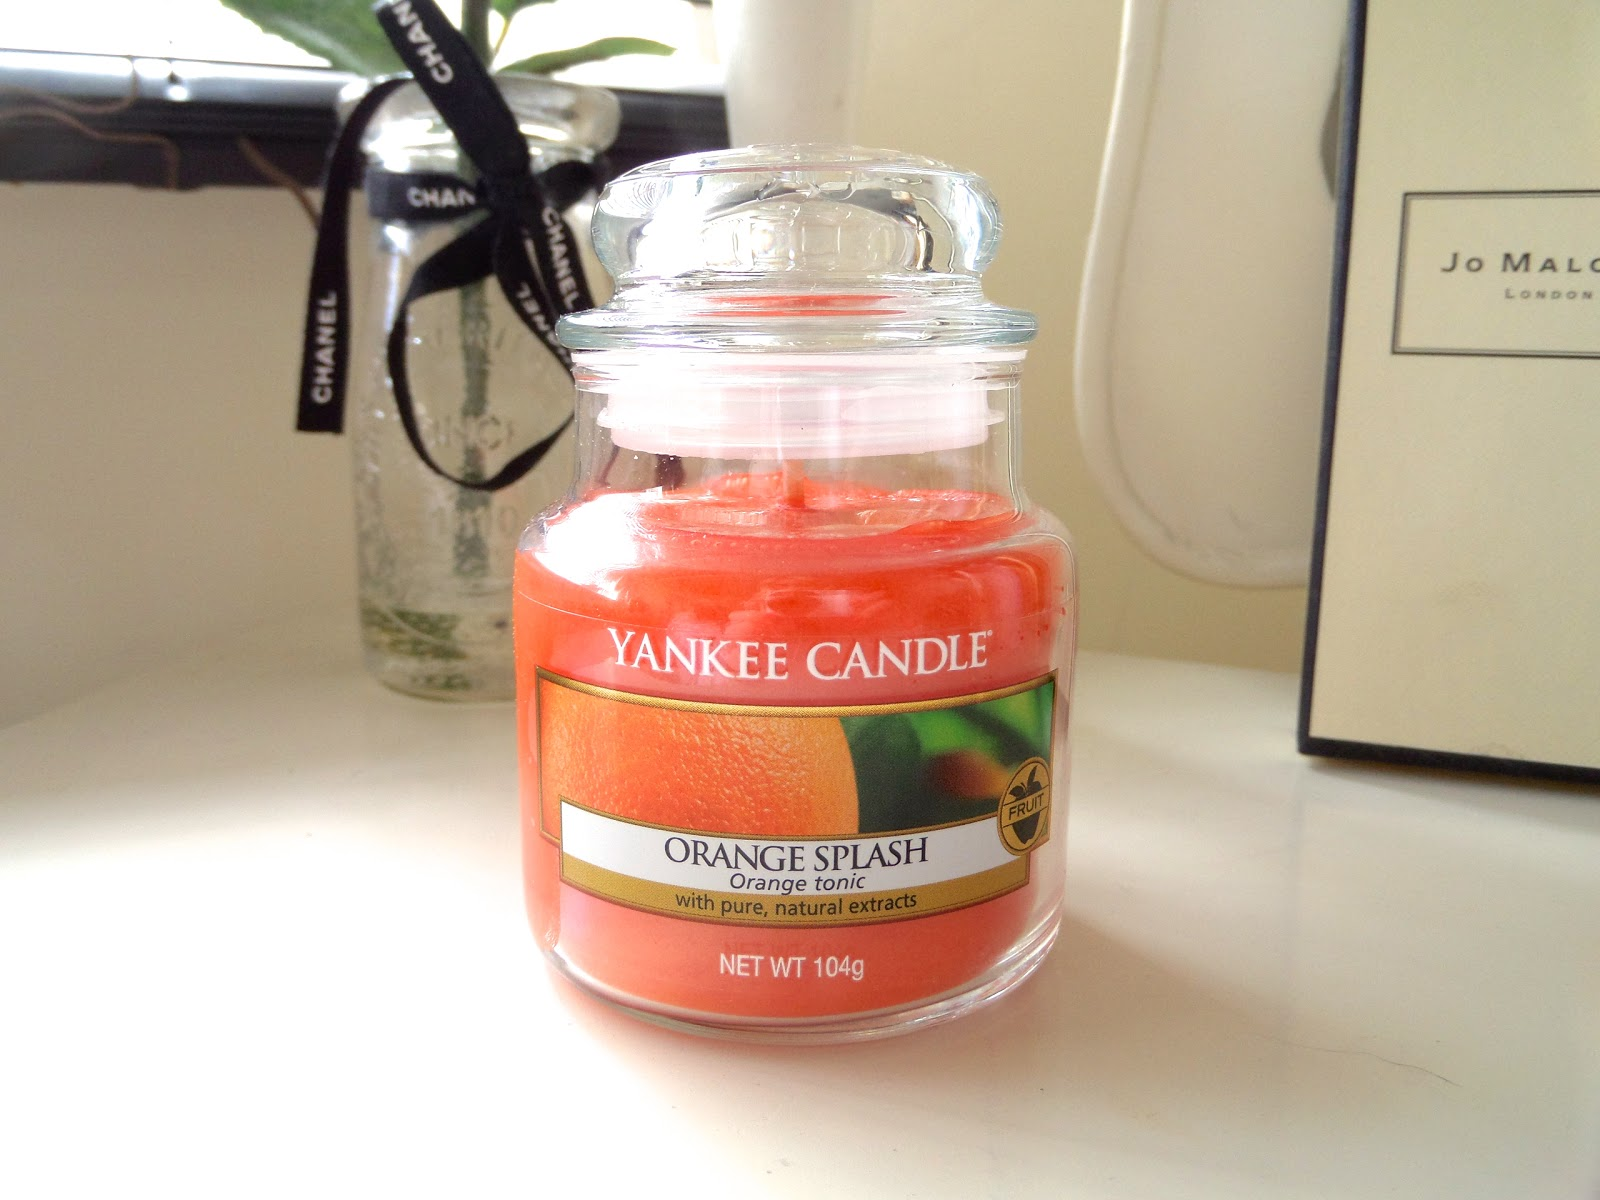 Yankee Candle Orange Splash Review